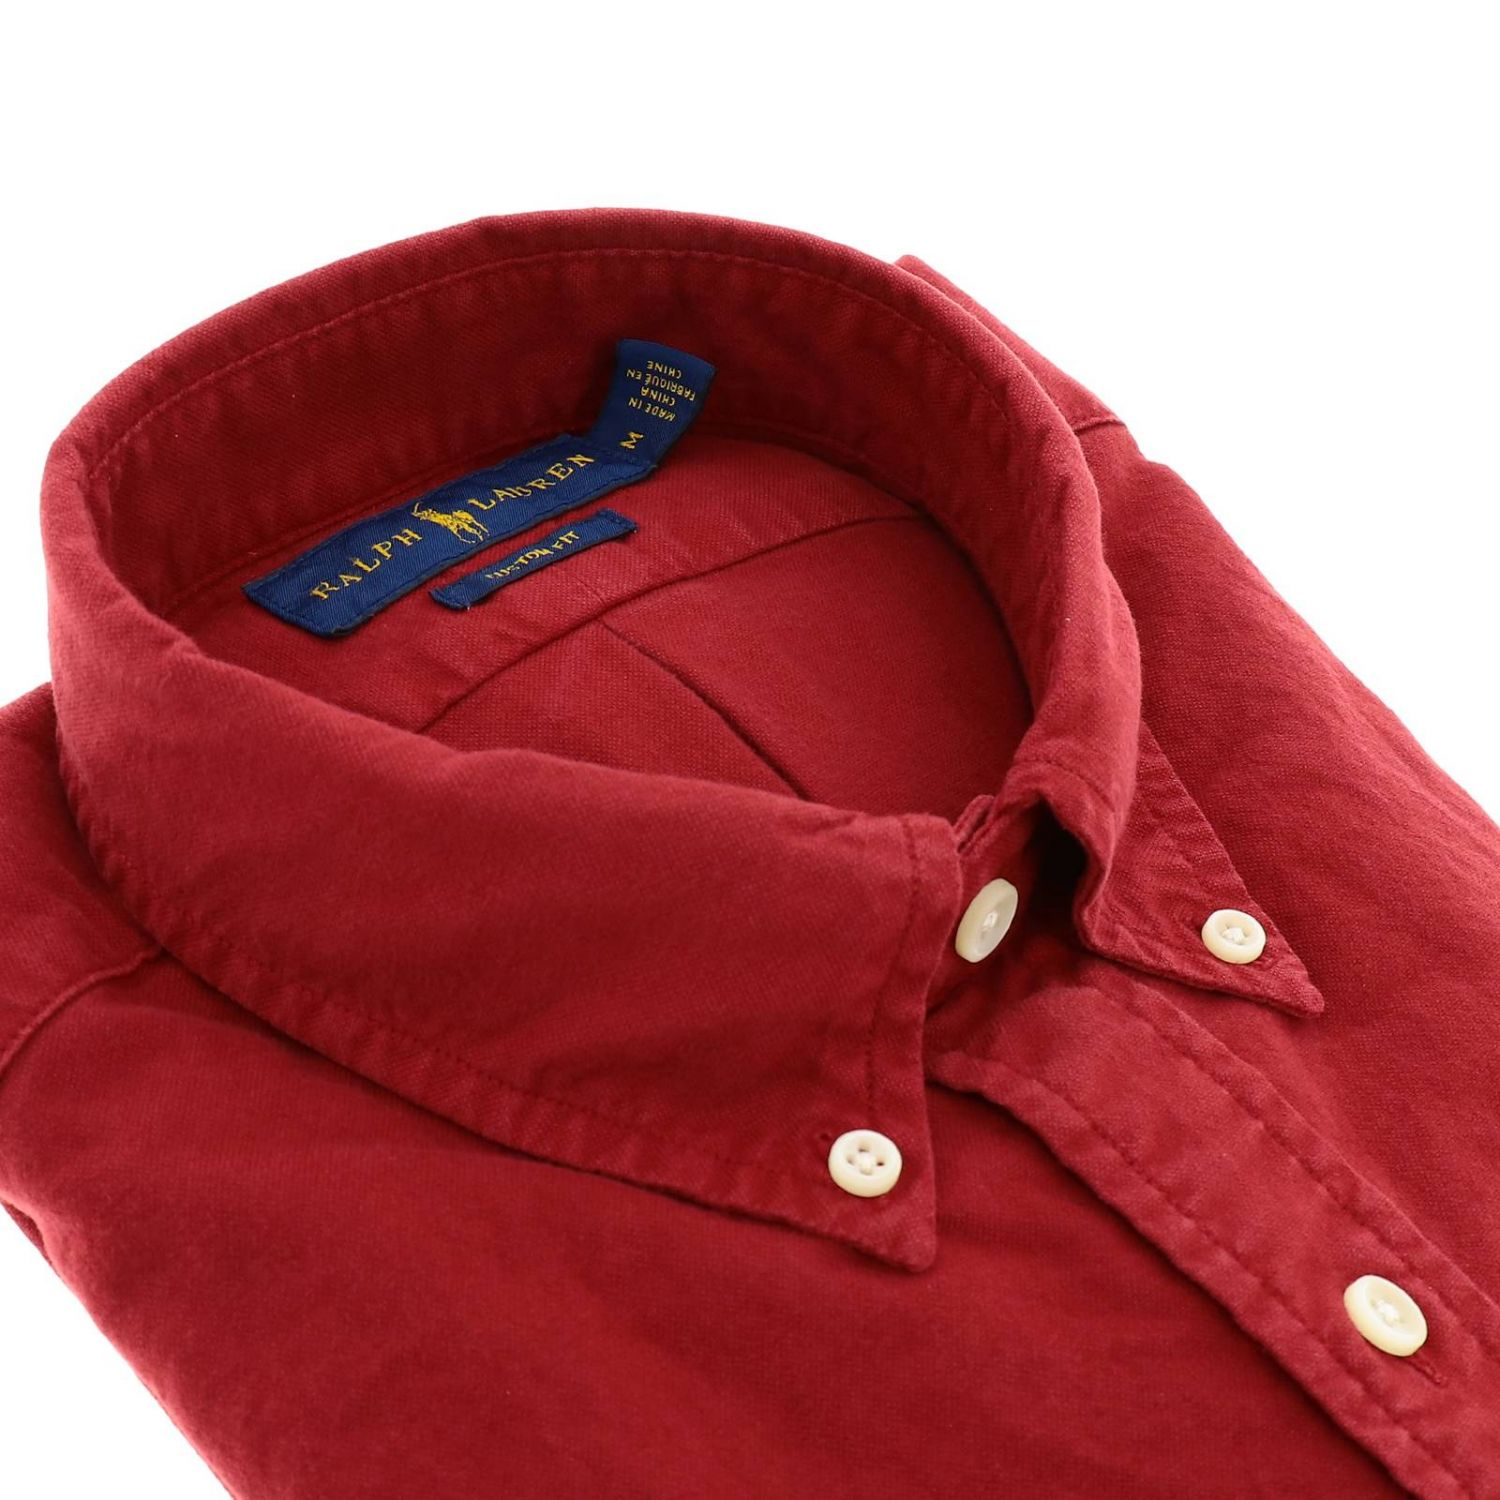 Chemise Oxford custom fit avec col button down et logo Polo Ralph Lauren rouge 2